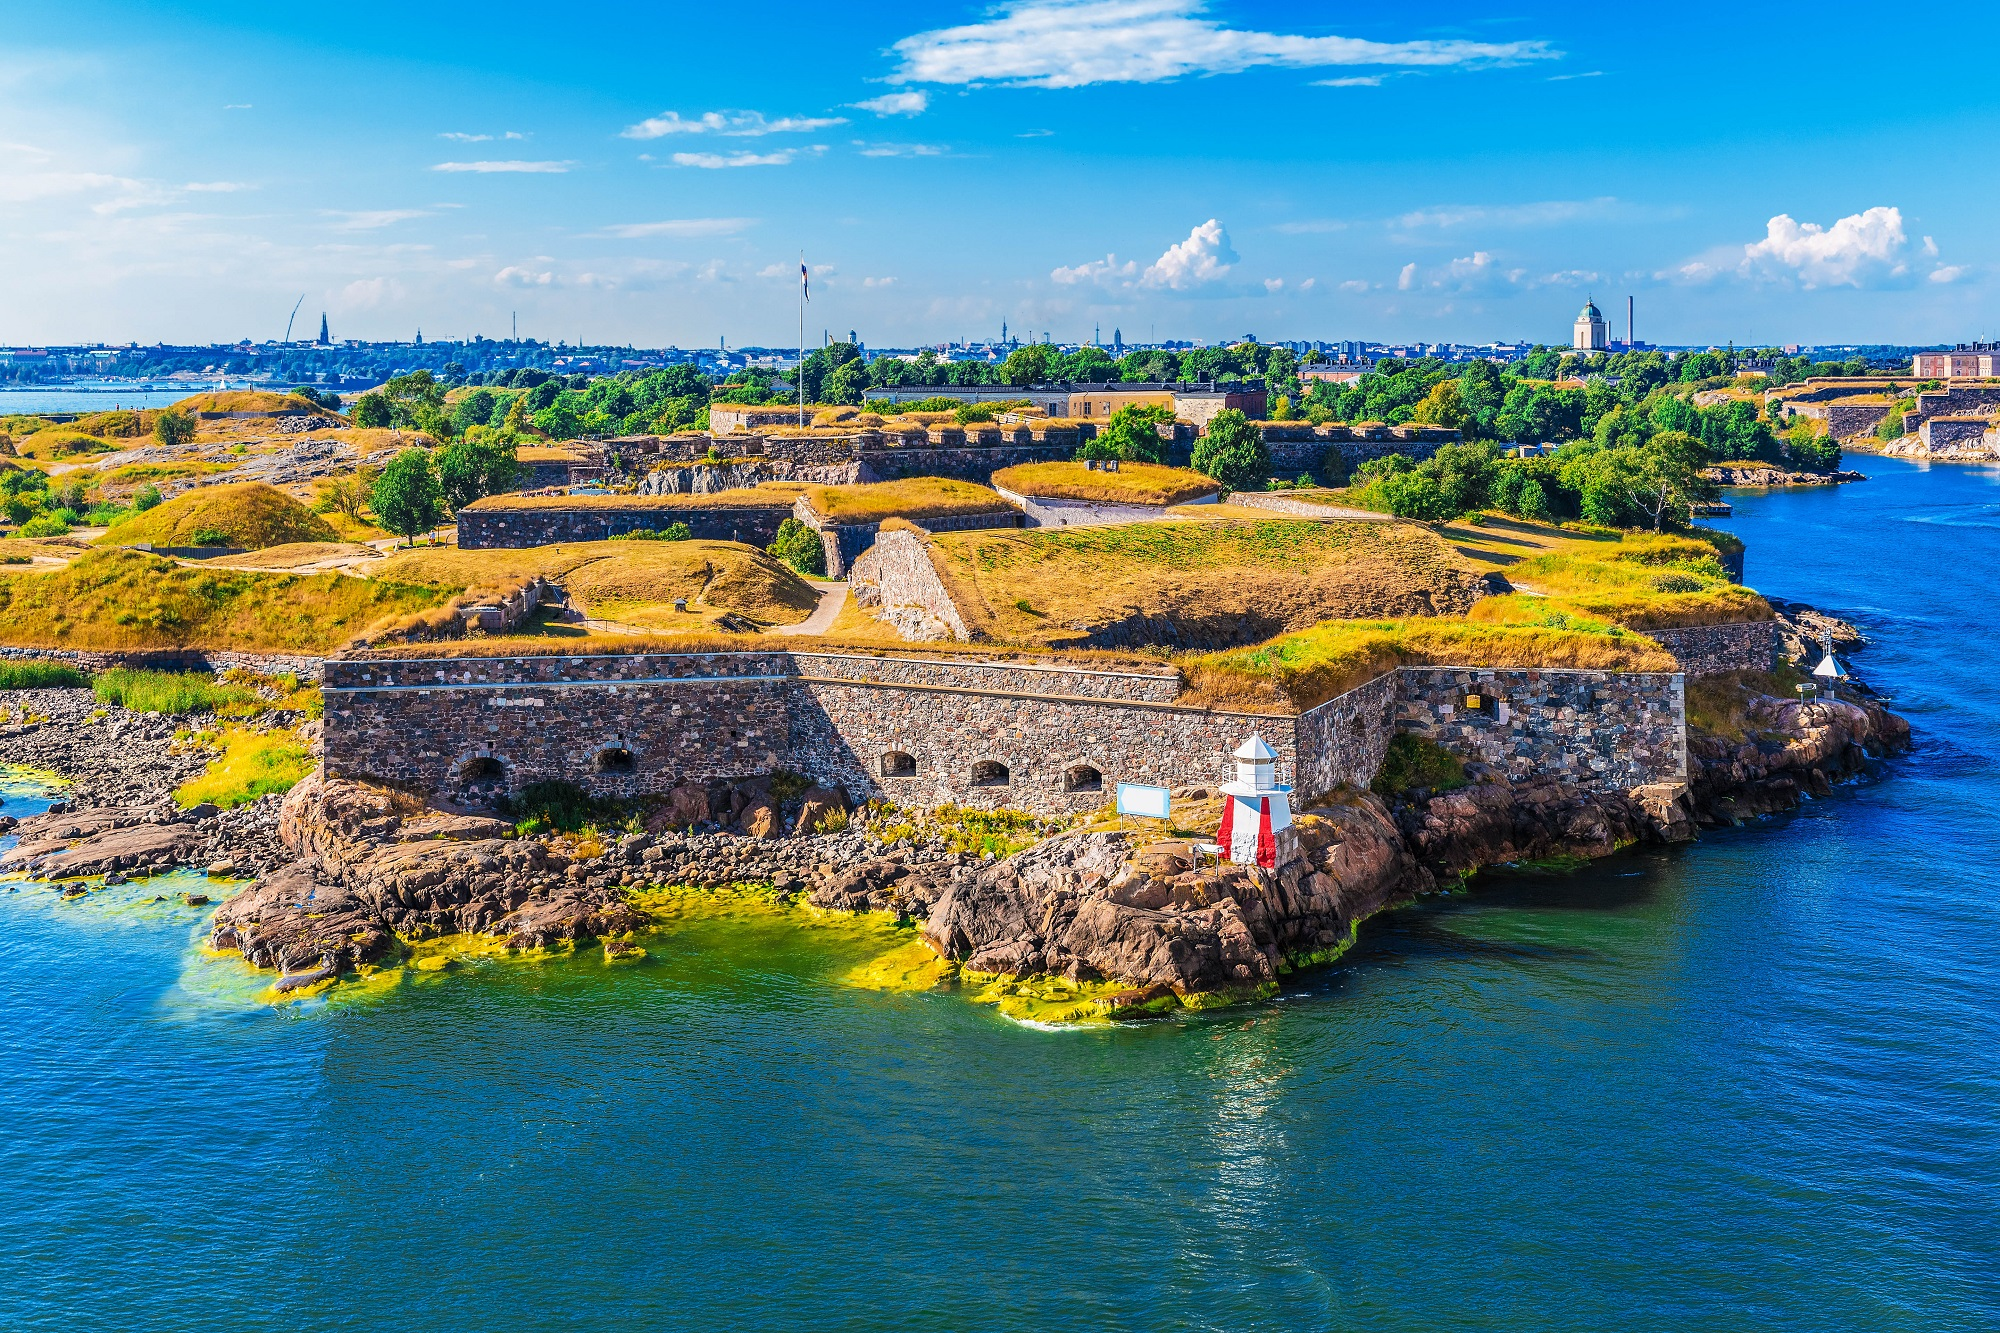 aerial view of Suomenlinna (Sveaborg) sea fortress in Helsinki, Finland shutterstock_166214942-2